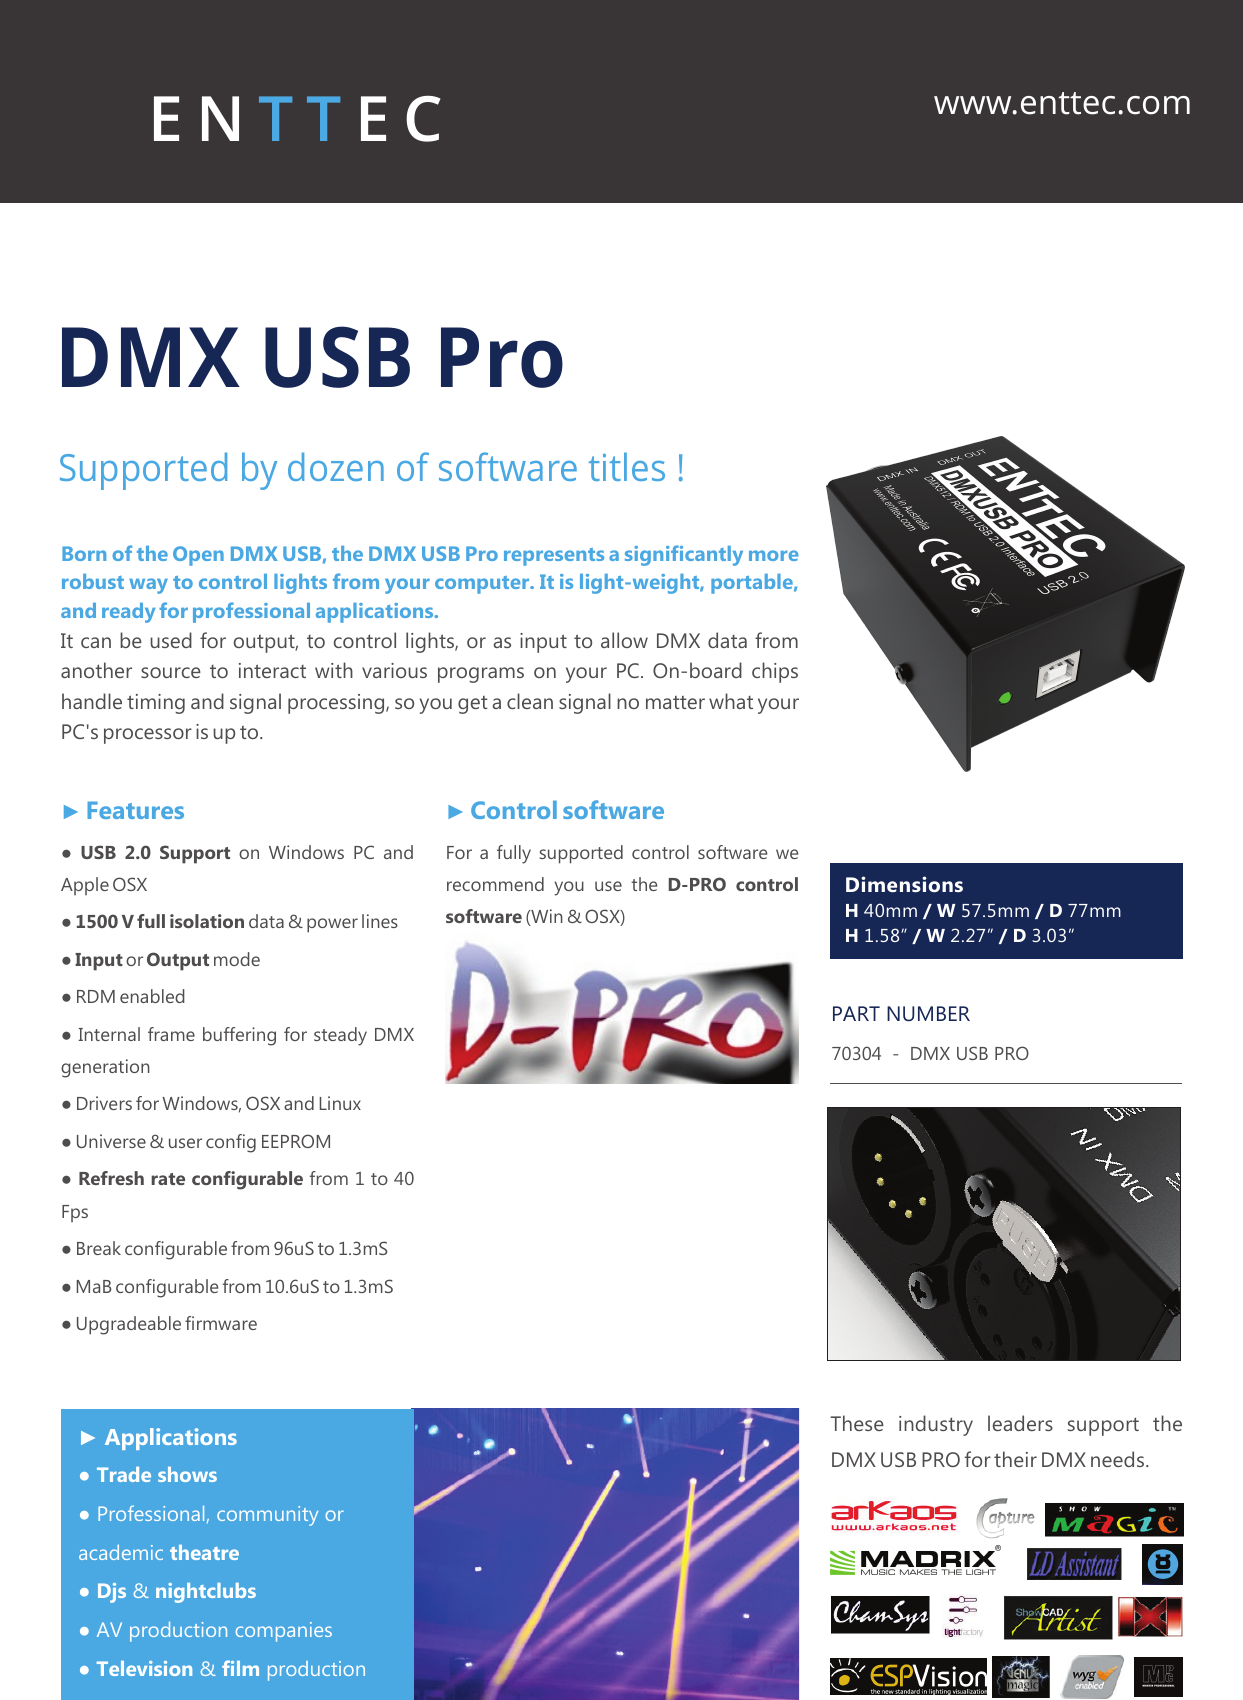 Enttec Dmx Usb Pro New Brochure User Manual